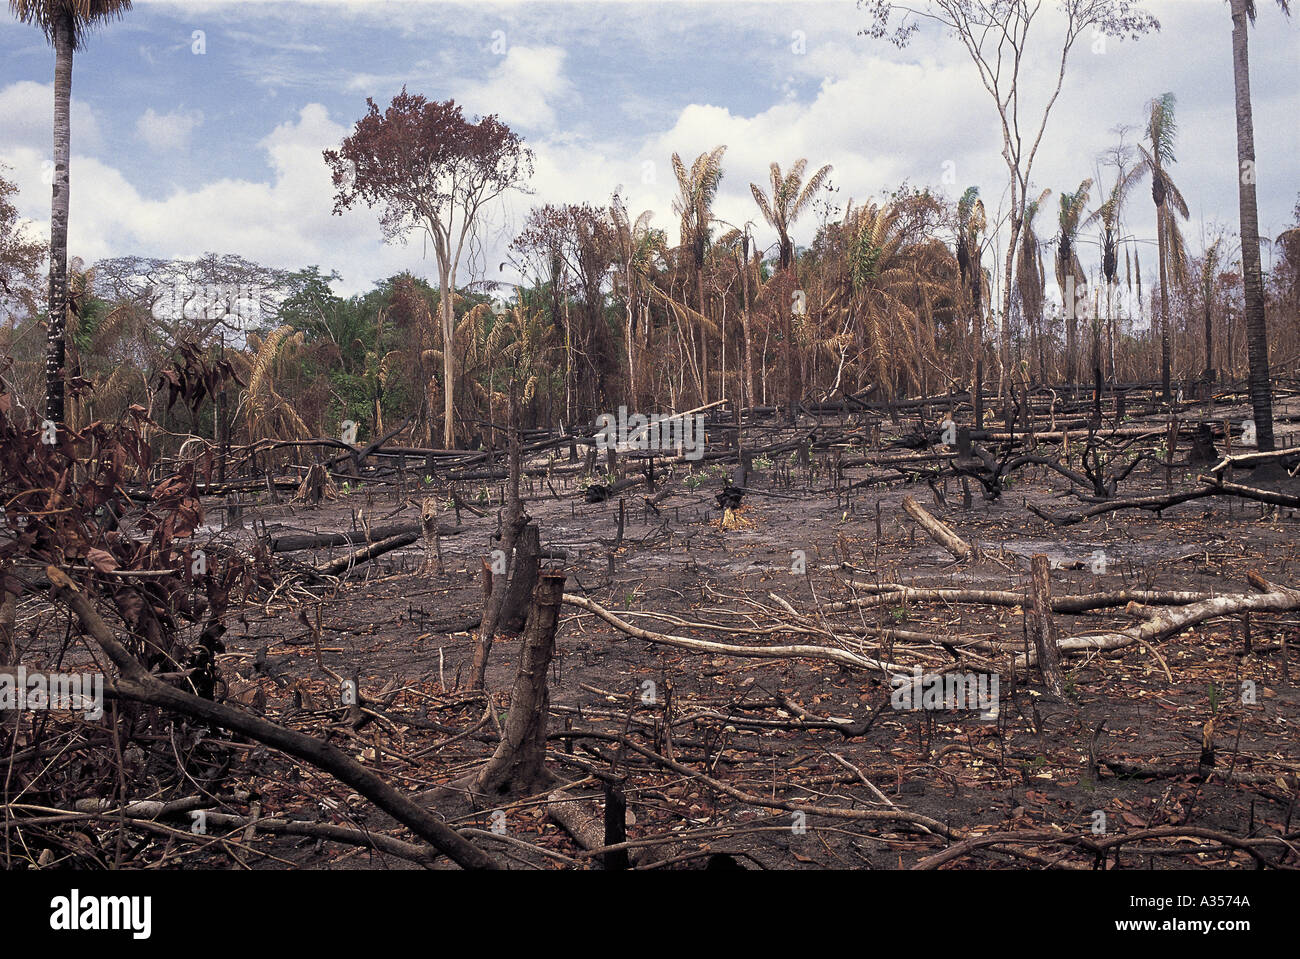 Slash And Burn Brazil Stock Photos Amp Slash And Burn Brazil